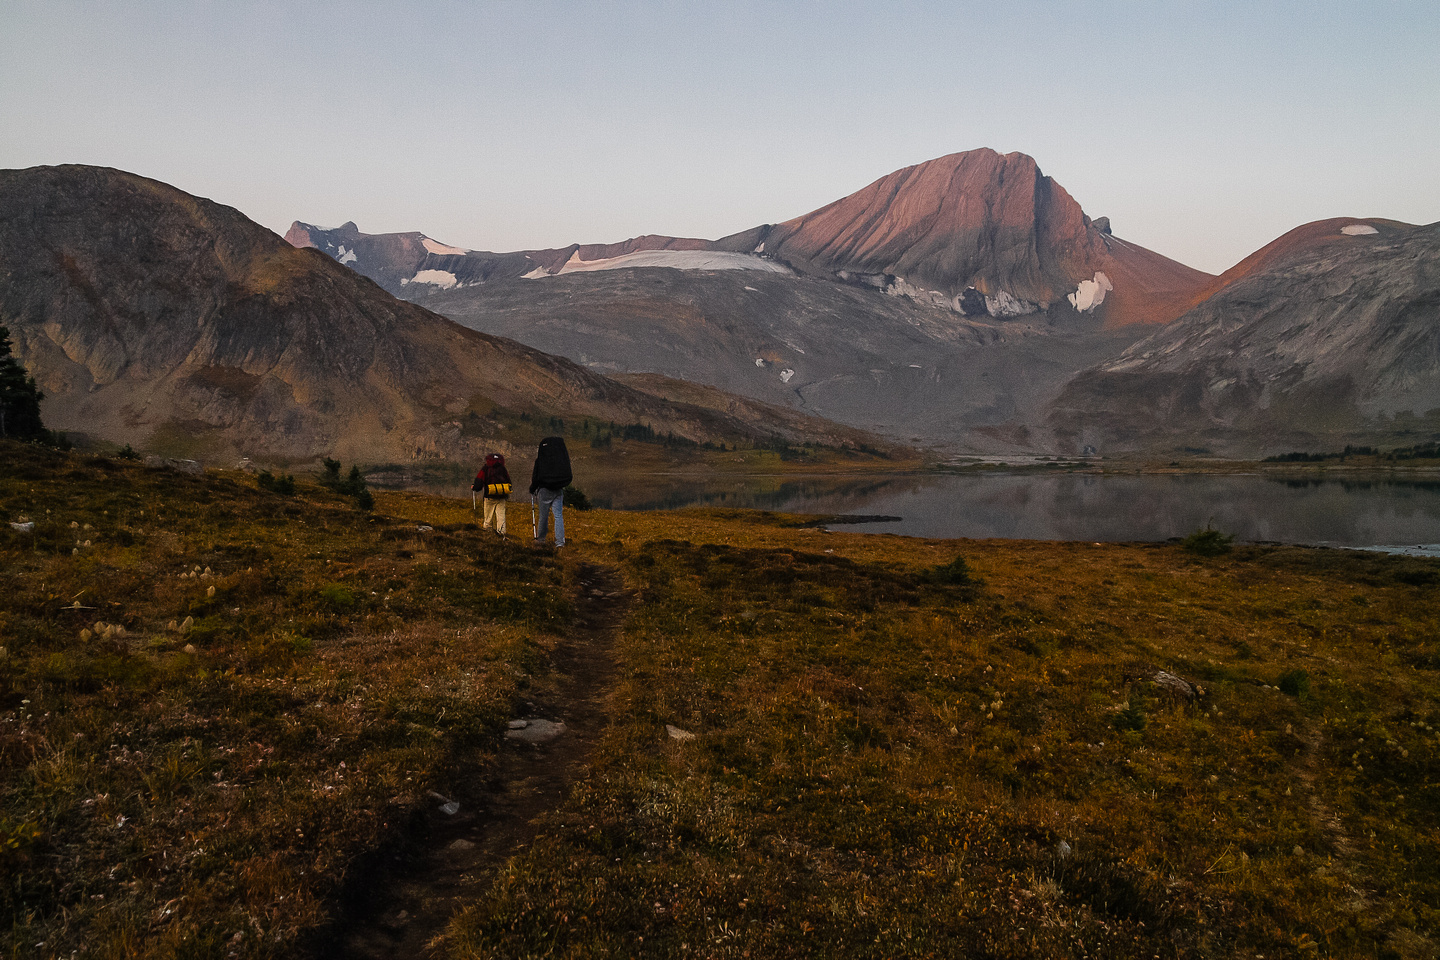 Leaving Aster Lake camp in early morning light towards Warrior Mountain, which we scrambled the day before.